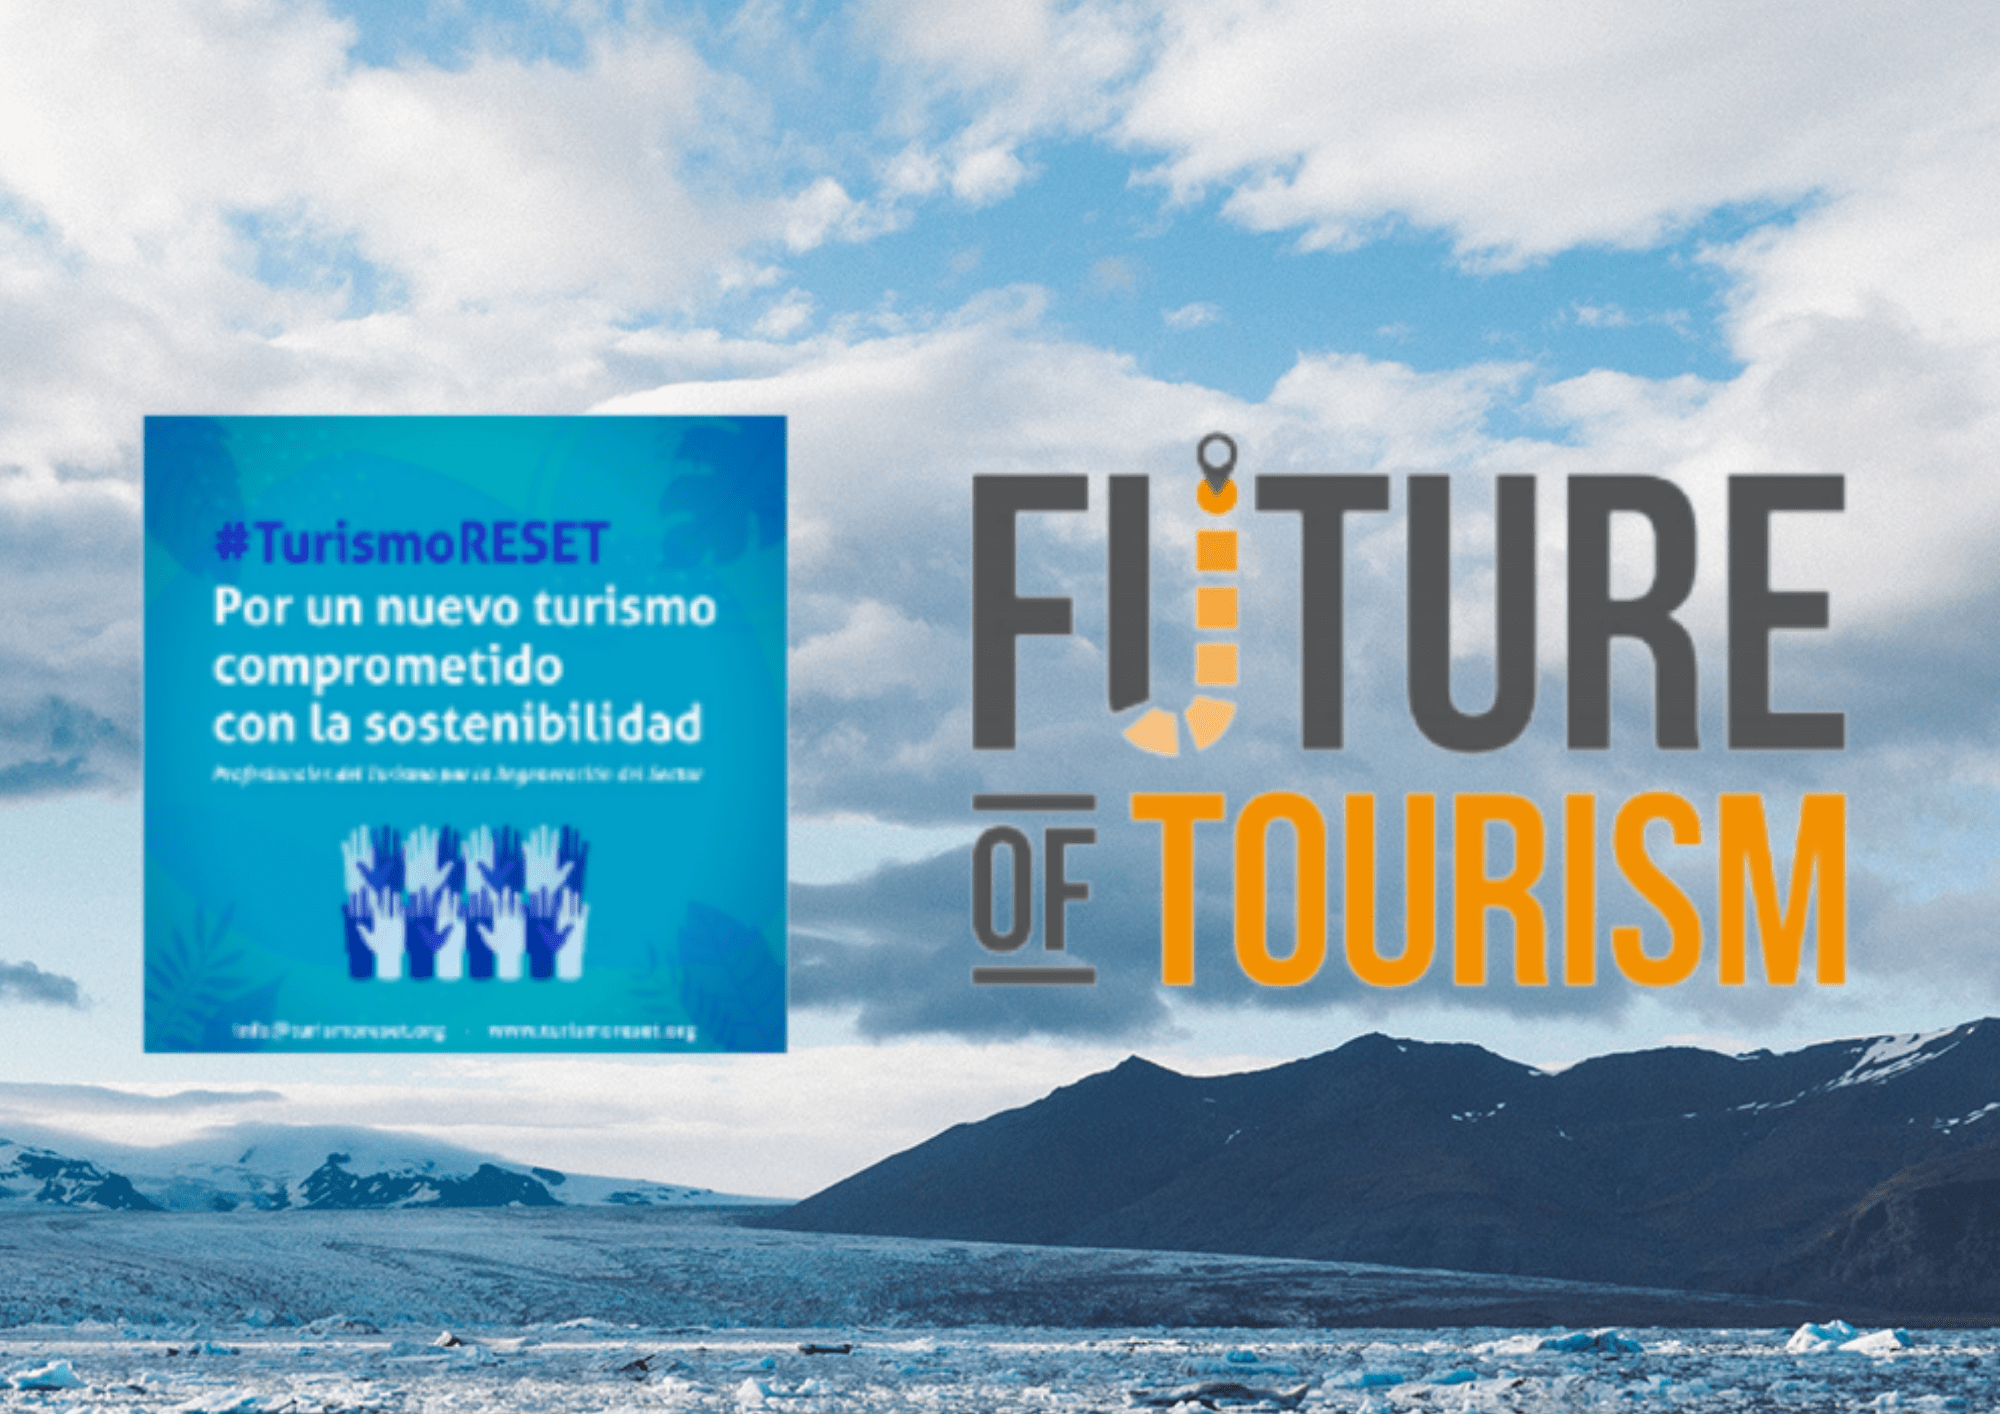 Foto #TurismoRESET y Future of Tourism